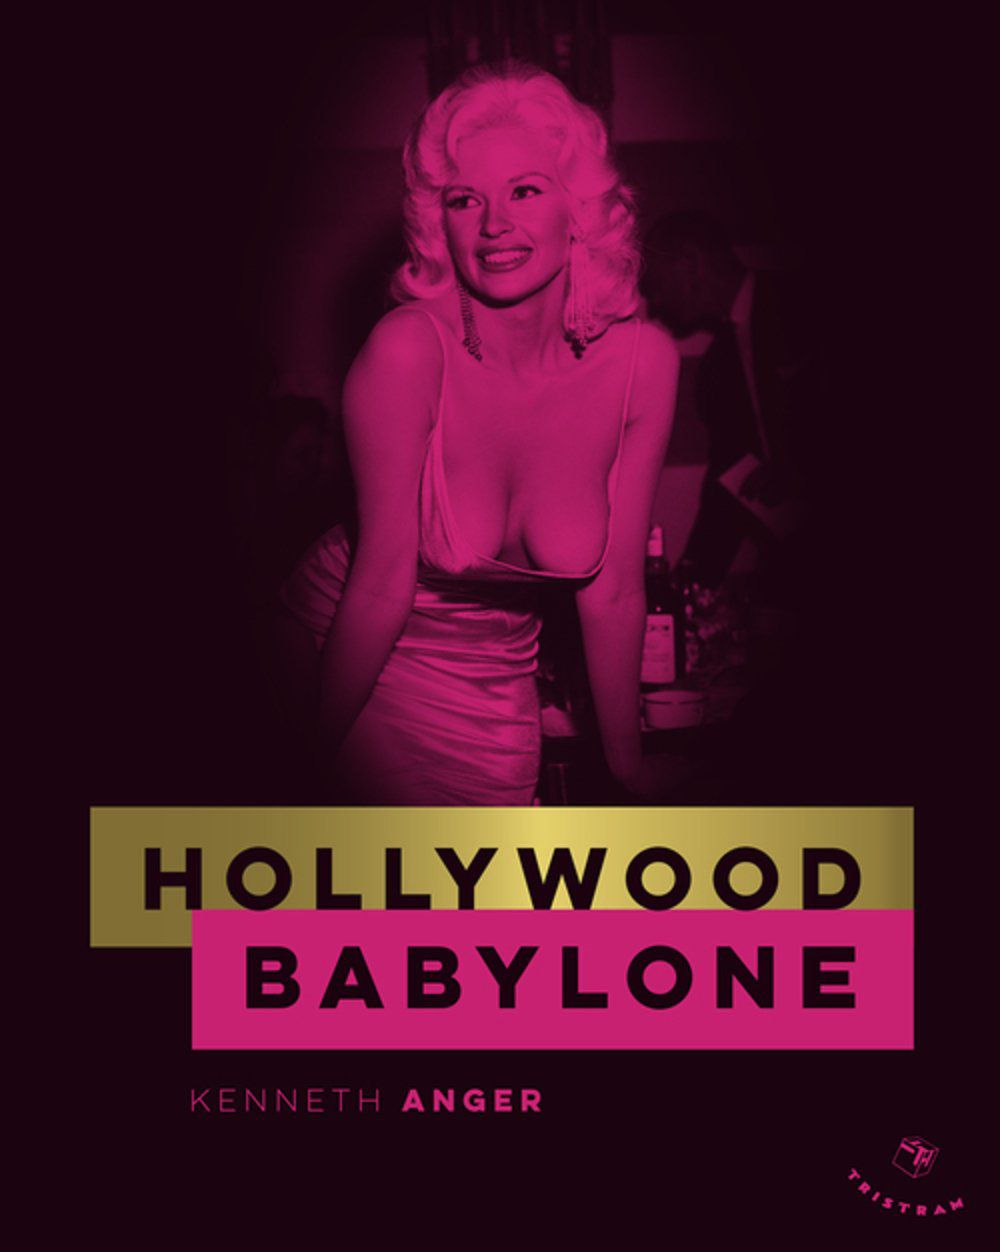 Hollywood babylon, from Ken Anger